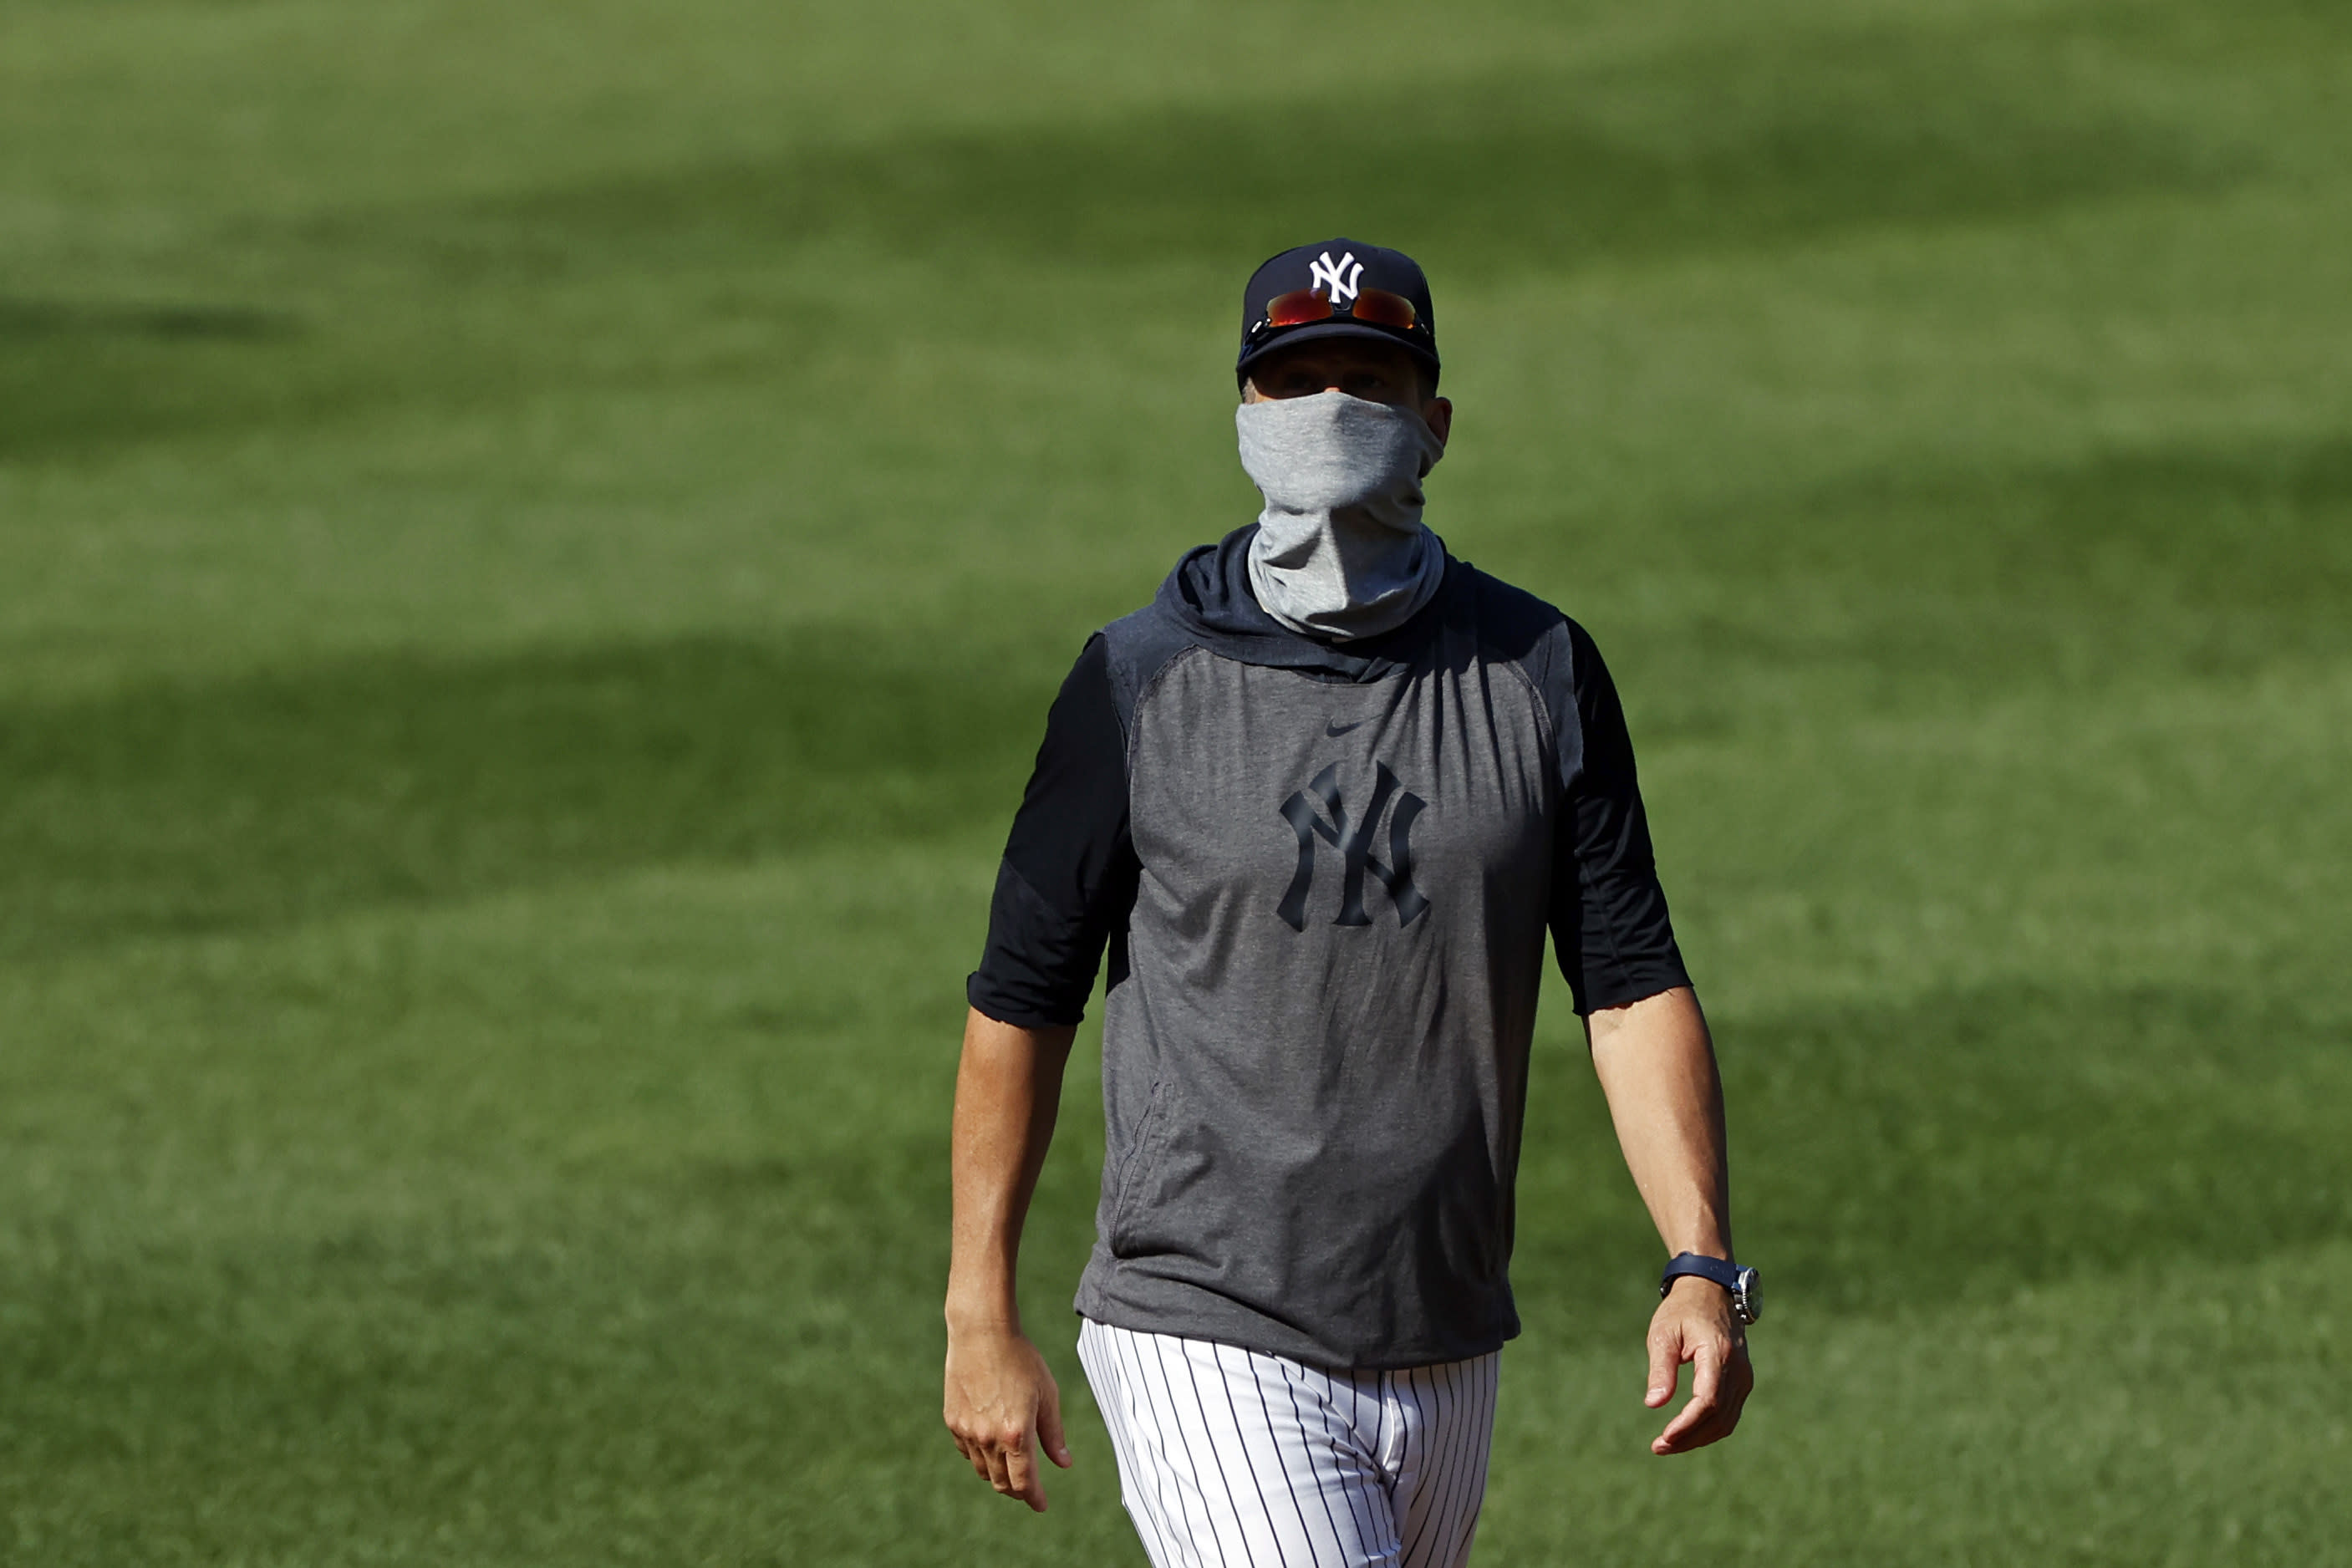 New York Yankees manager Aaron Boone during a baseball workout at Yankee Stadium in New York, Saturday, July 4, 2020. (AP Photo/Adam Hunger)